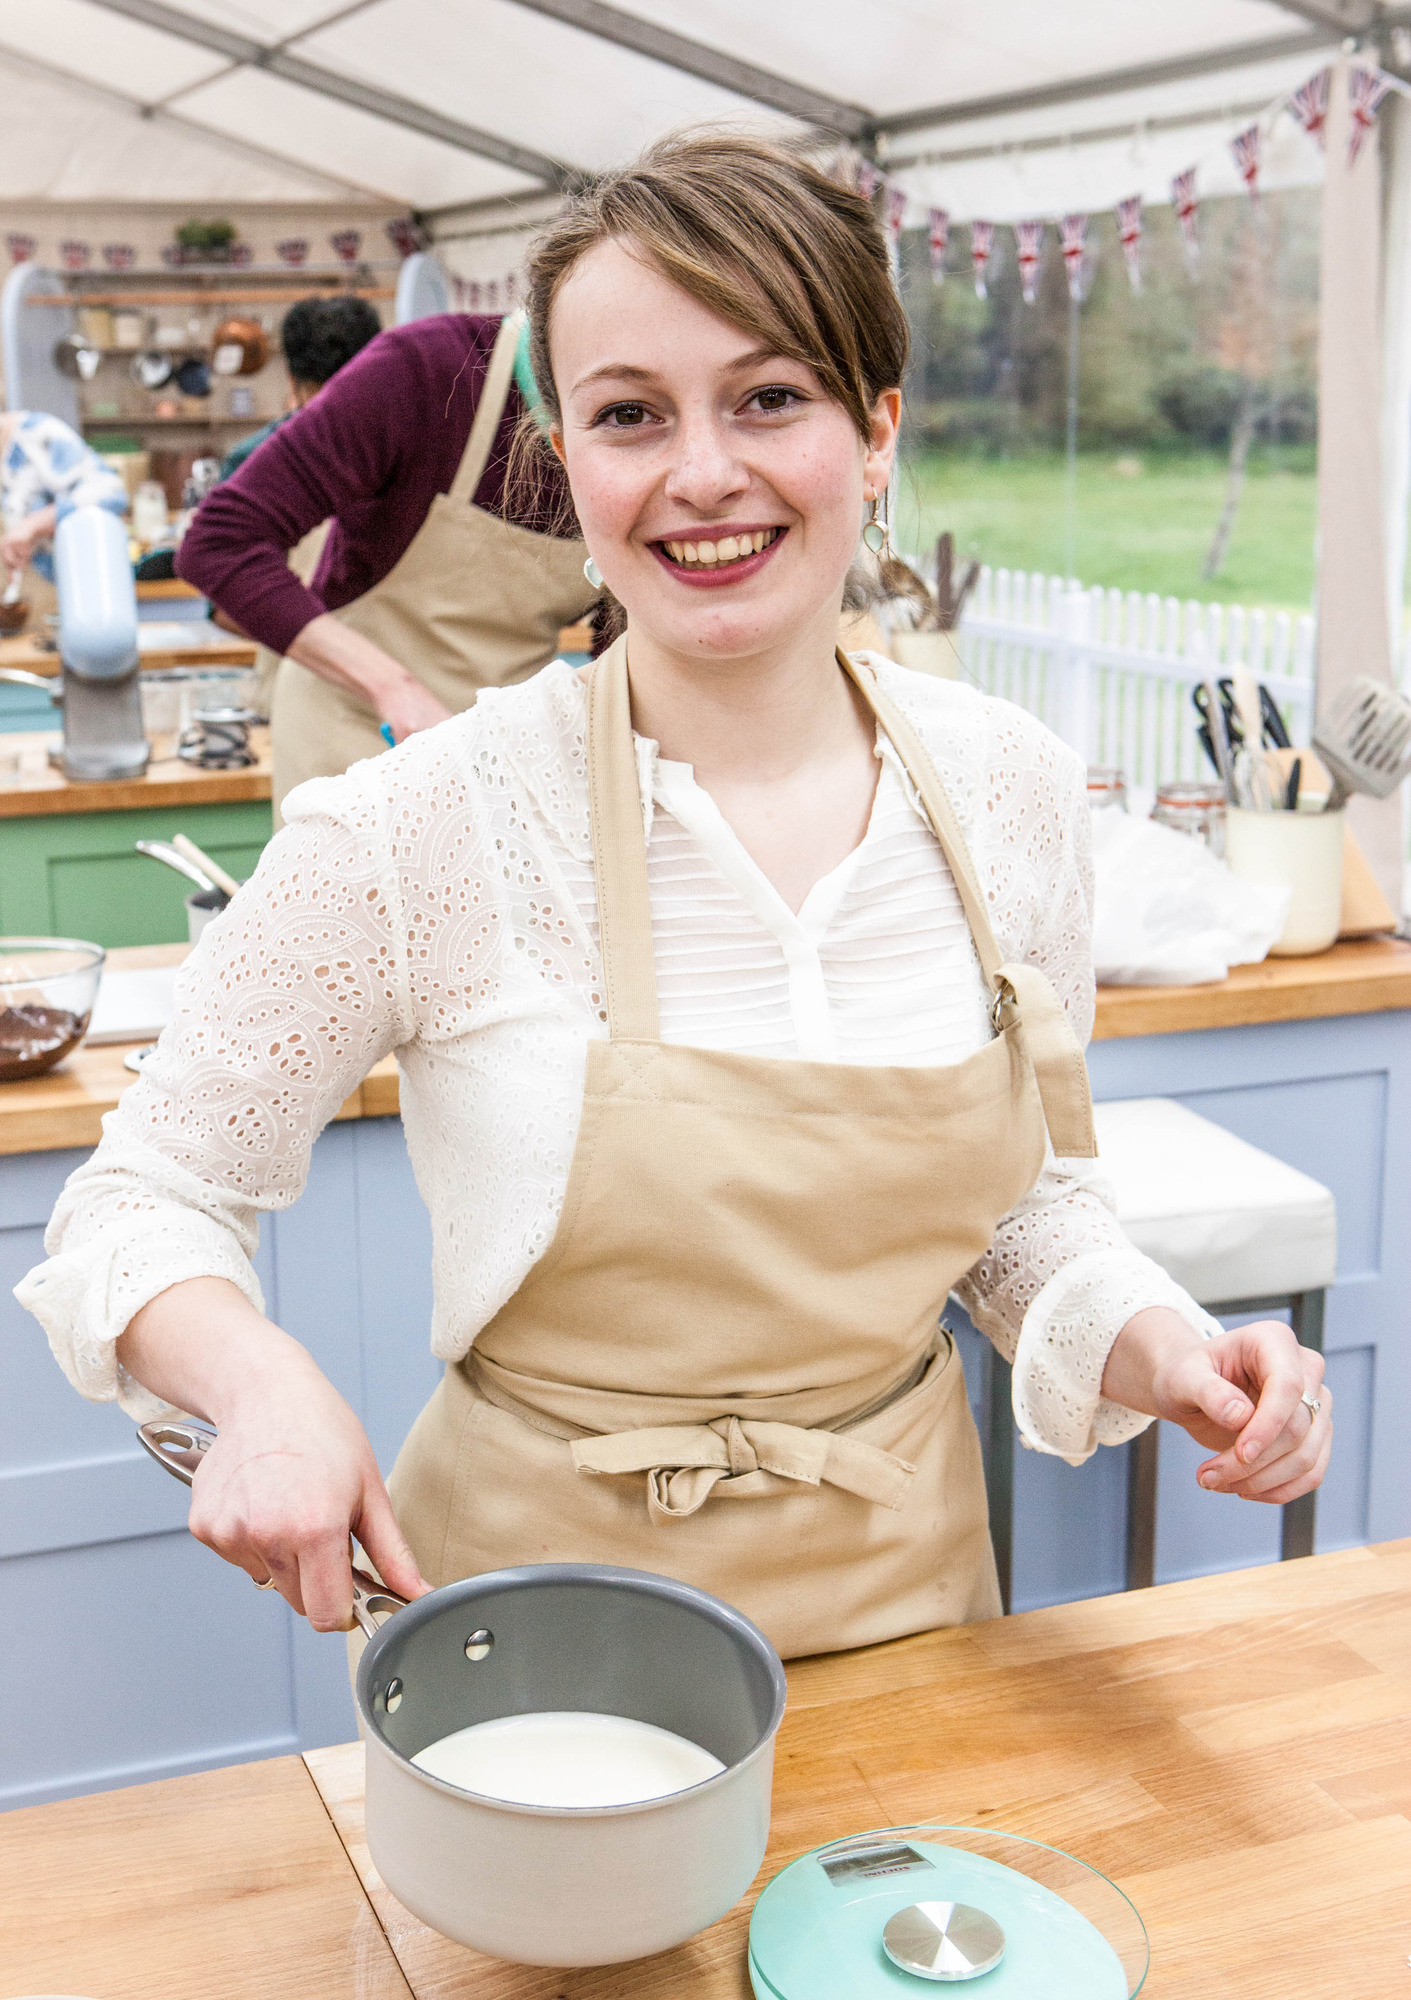 Flora from The Great British Bake Off